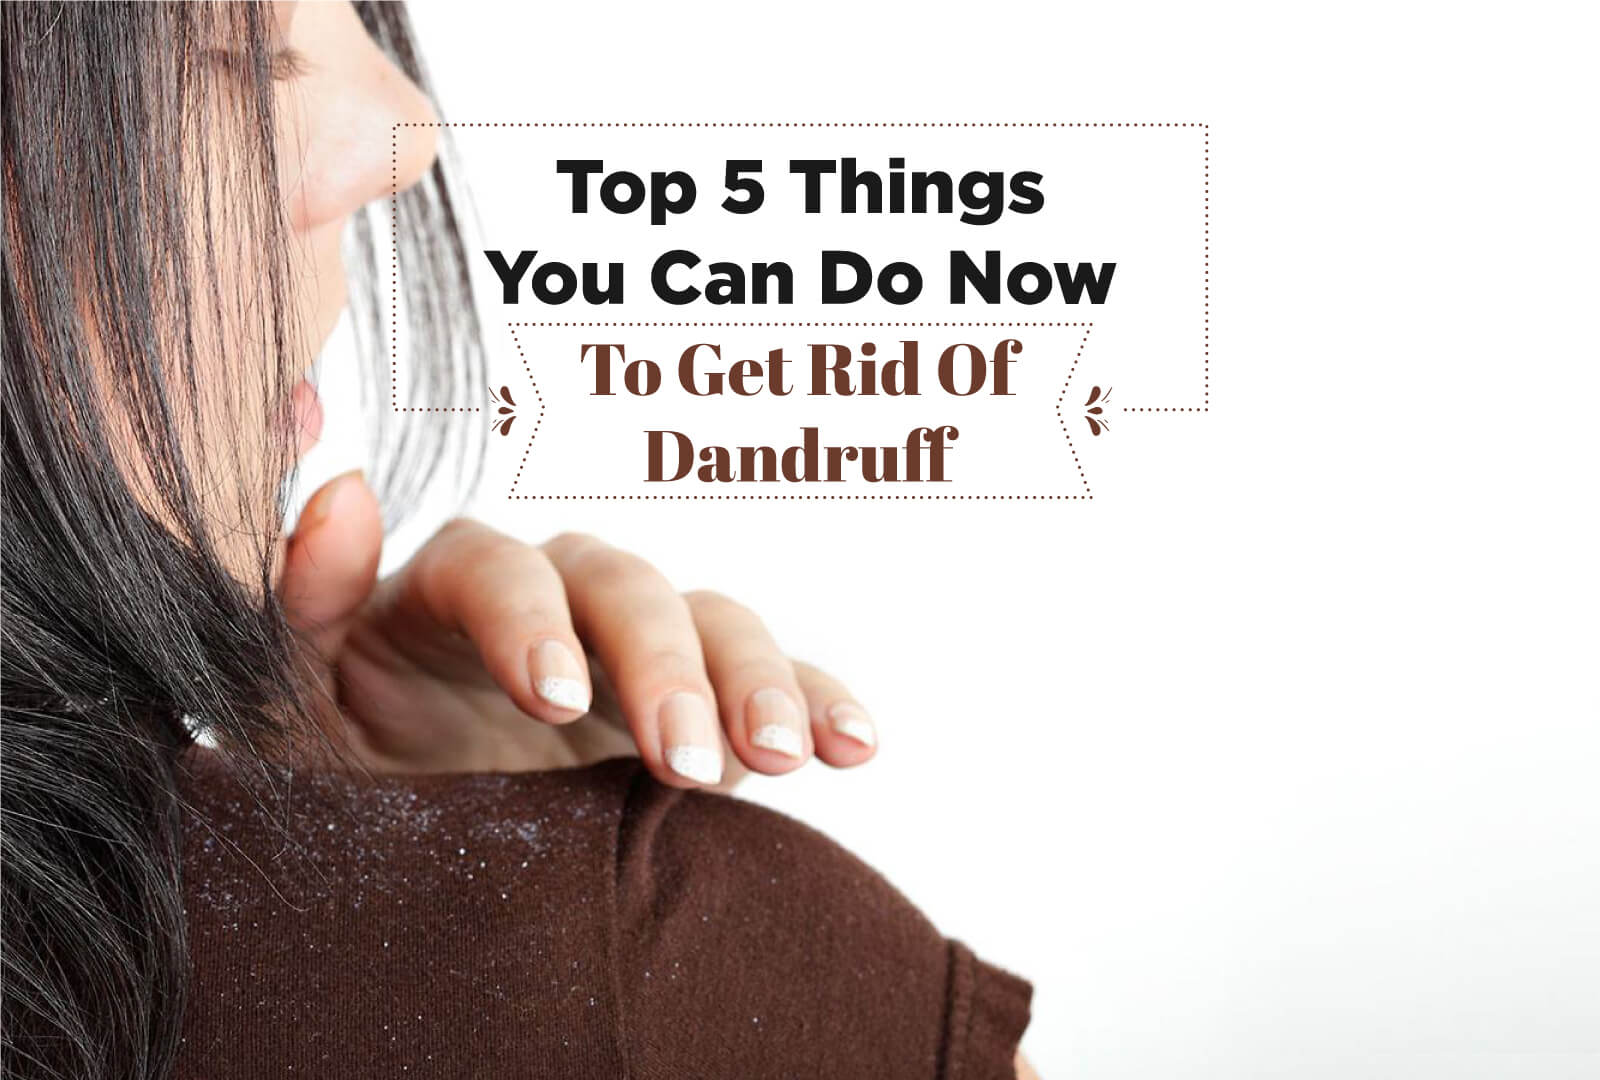 THE TOP 5 THINGS YOU CAN DO NOW TO GET RID OF DANDRUFF